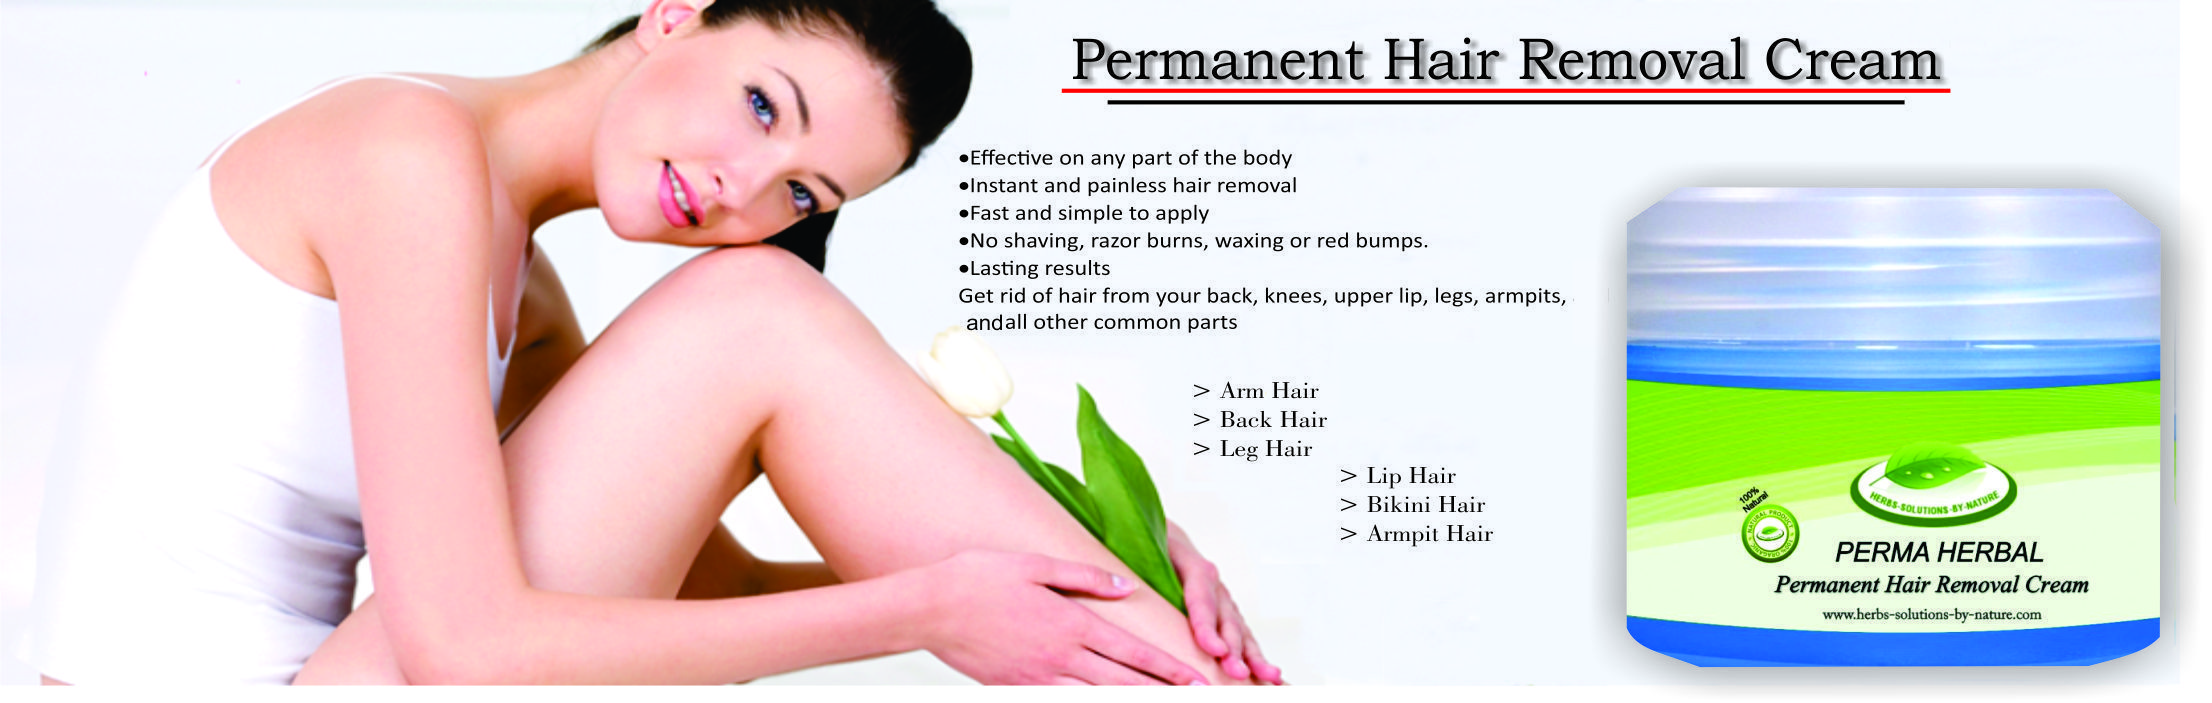 Permanent Hair Removal Cream A Cheap And Effective Solution Hair